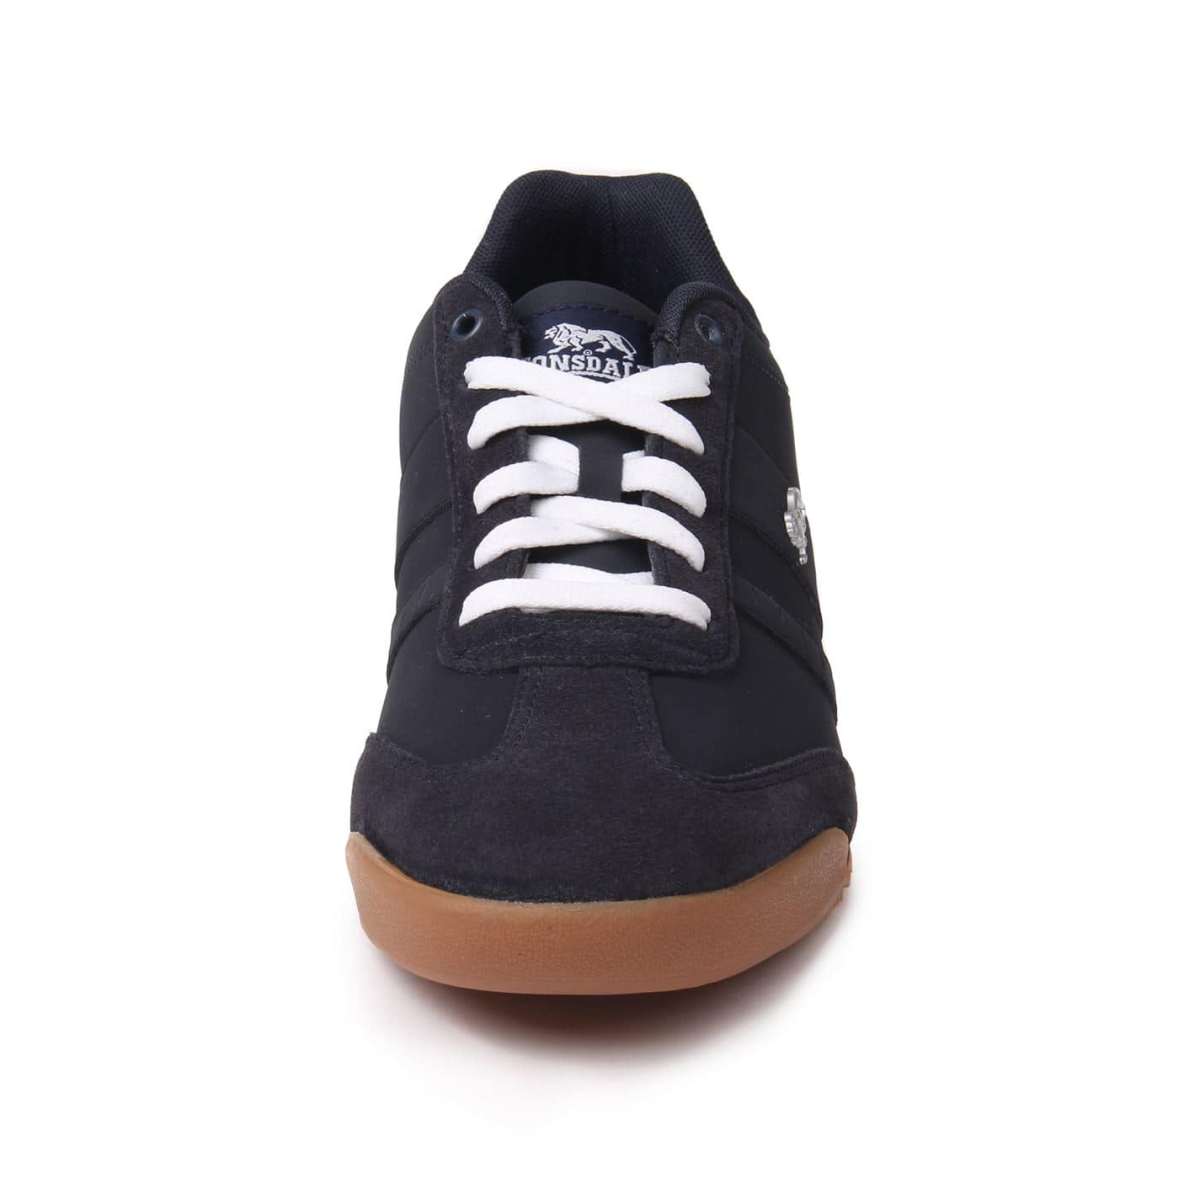 LONSDALE Baskets Hommes Chaussures De Course Baskets Chaussures Trainers Lambo 0569